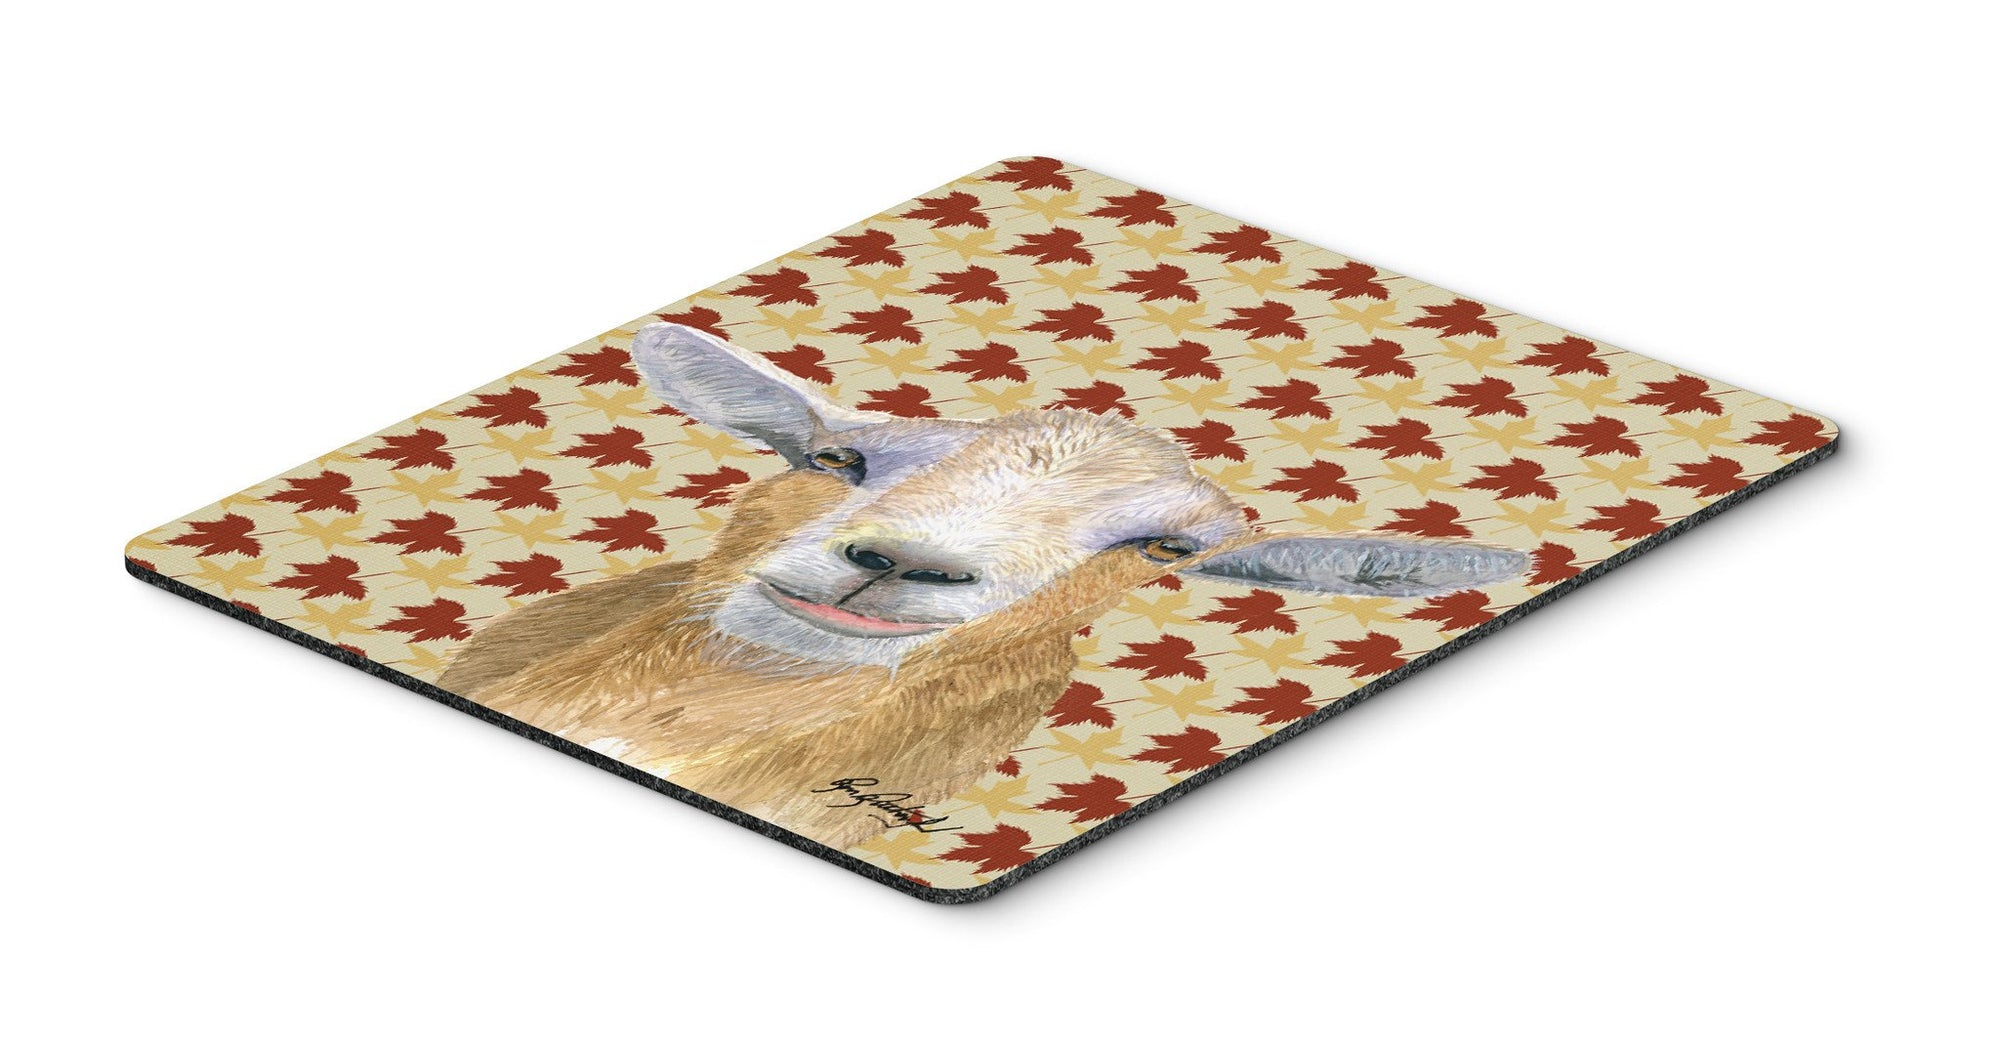 Fall Leaves Goat Mouse Pad, Hot Pad or Trivet by Caroline's Treasures